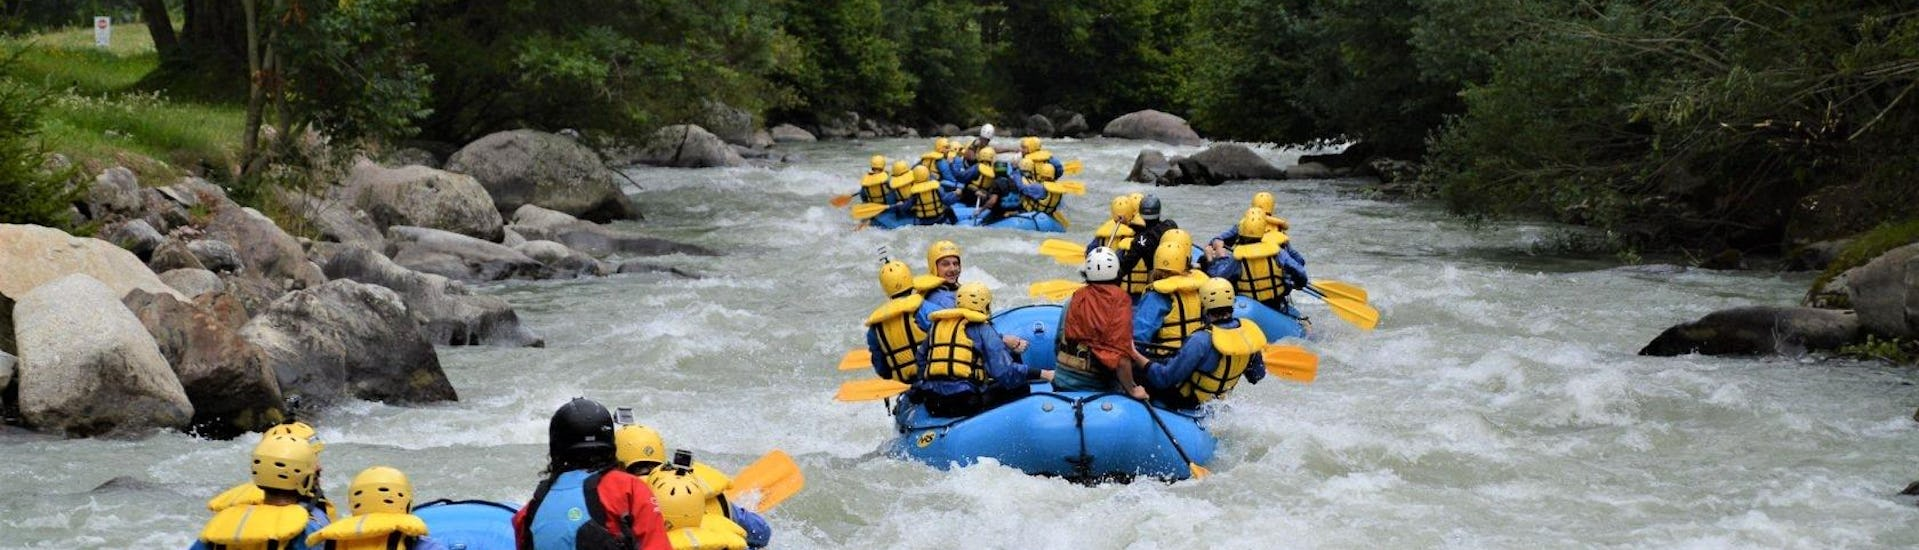 Some rafts are going down the river Noce during one of the rafting activities organized by X Raft Val di Sole.